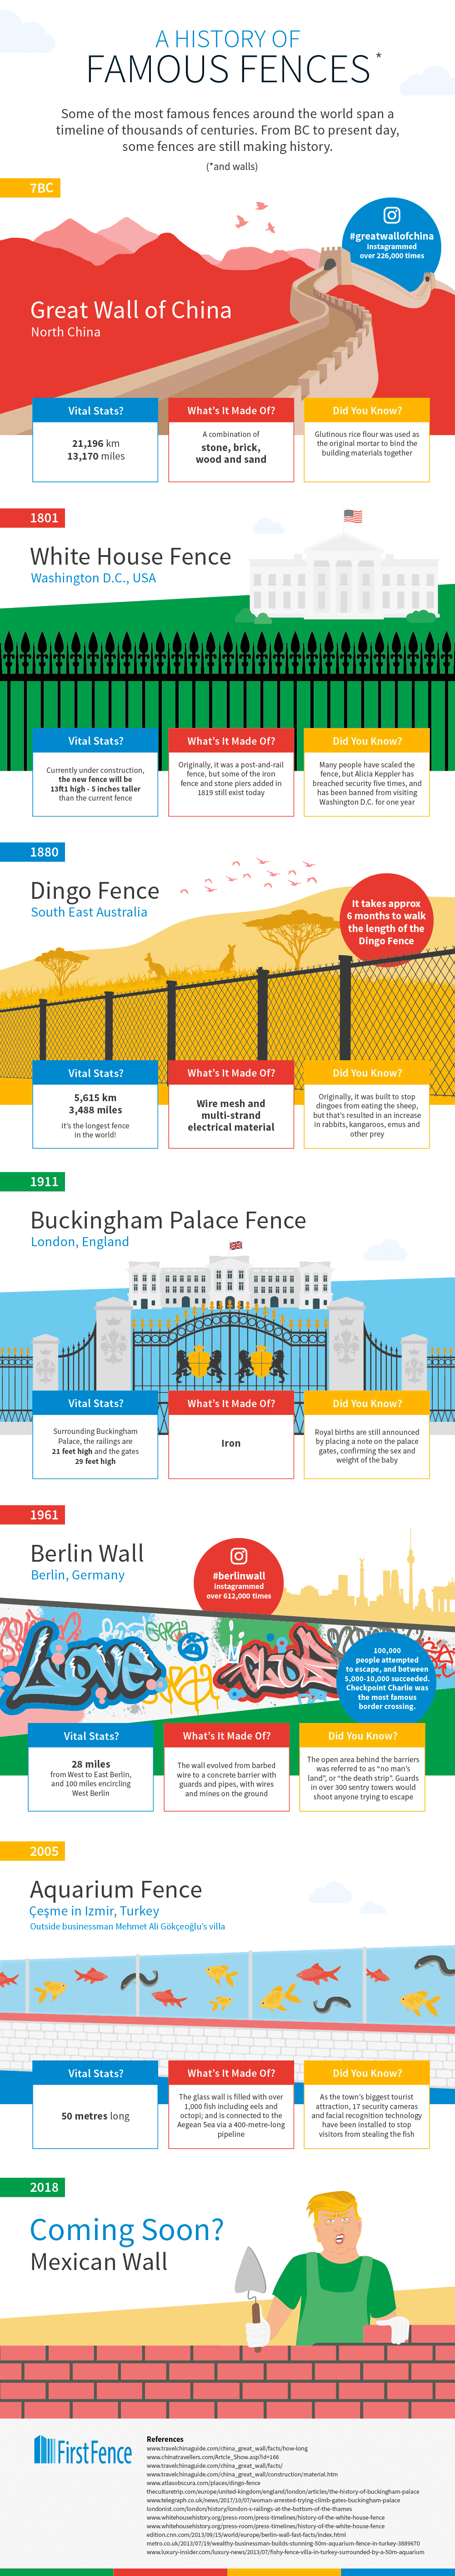 A History of Famous Fences #infographic